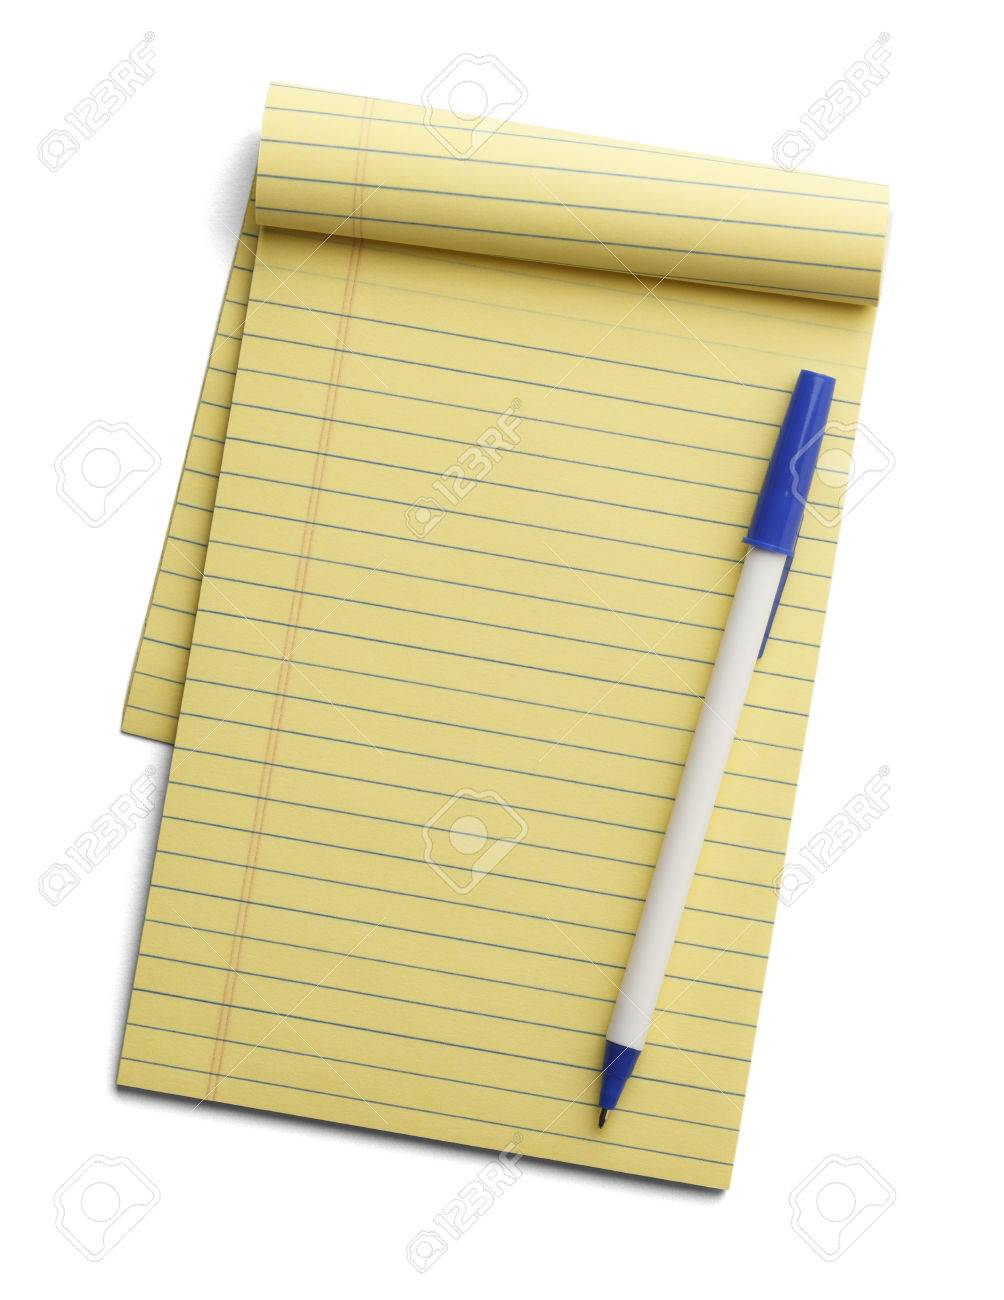 Yellow line notepad with pen on top isolated on a white background. - 38386723